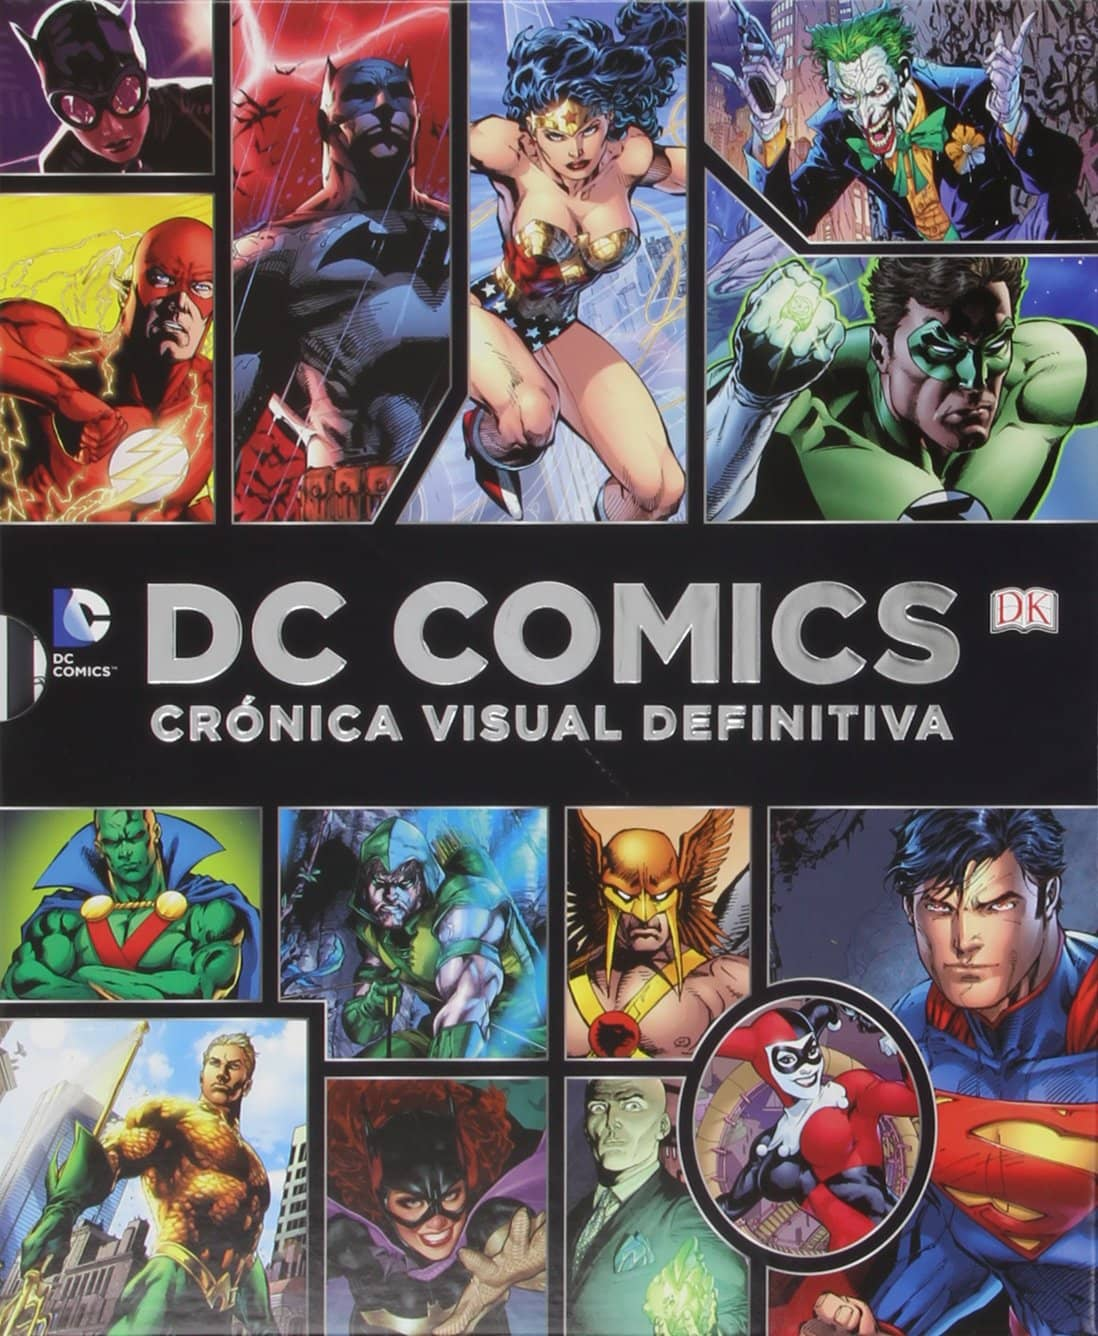 DC COMICS. CRONICA VISUAL DEFINITIVA